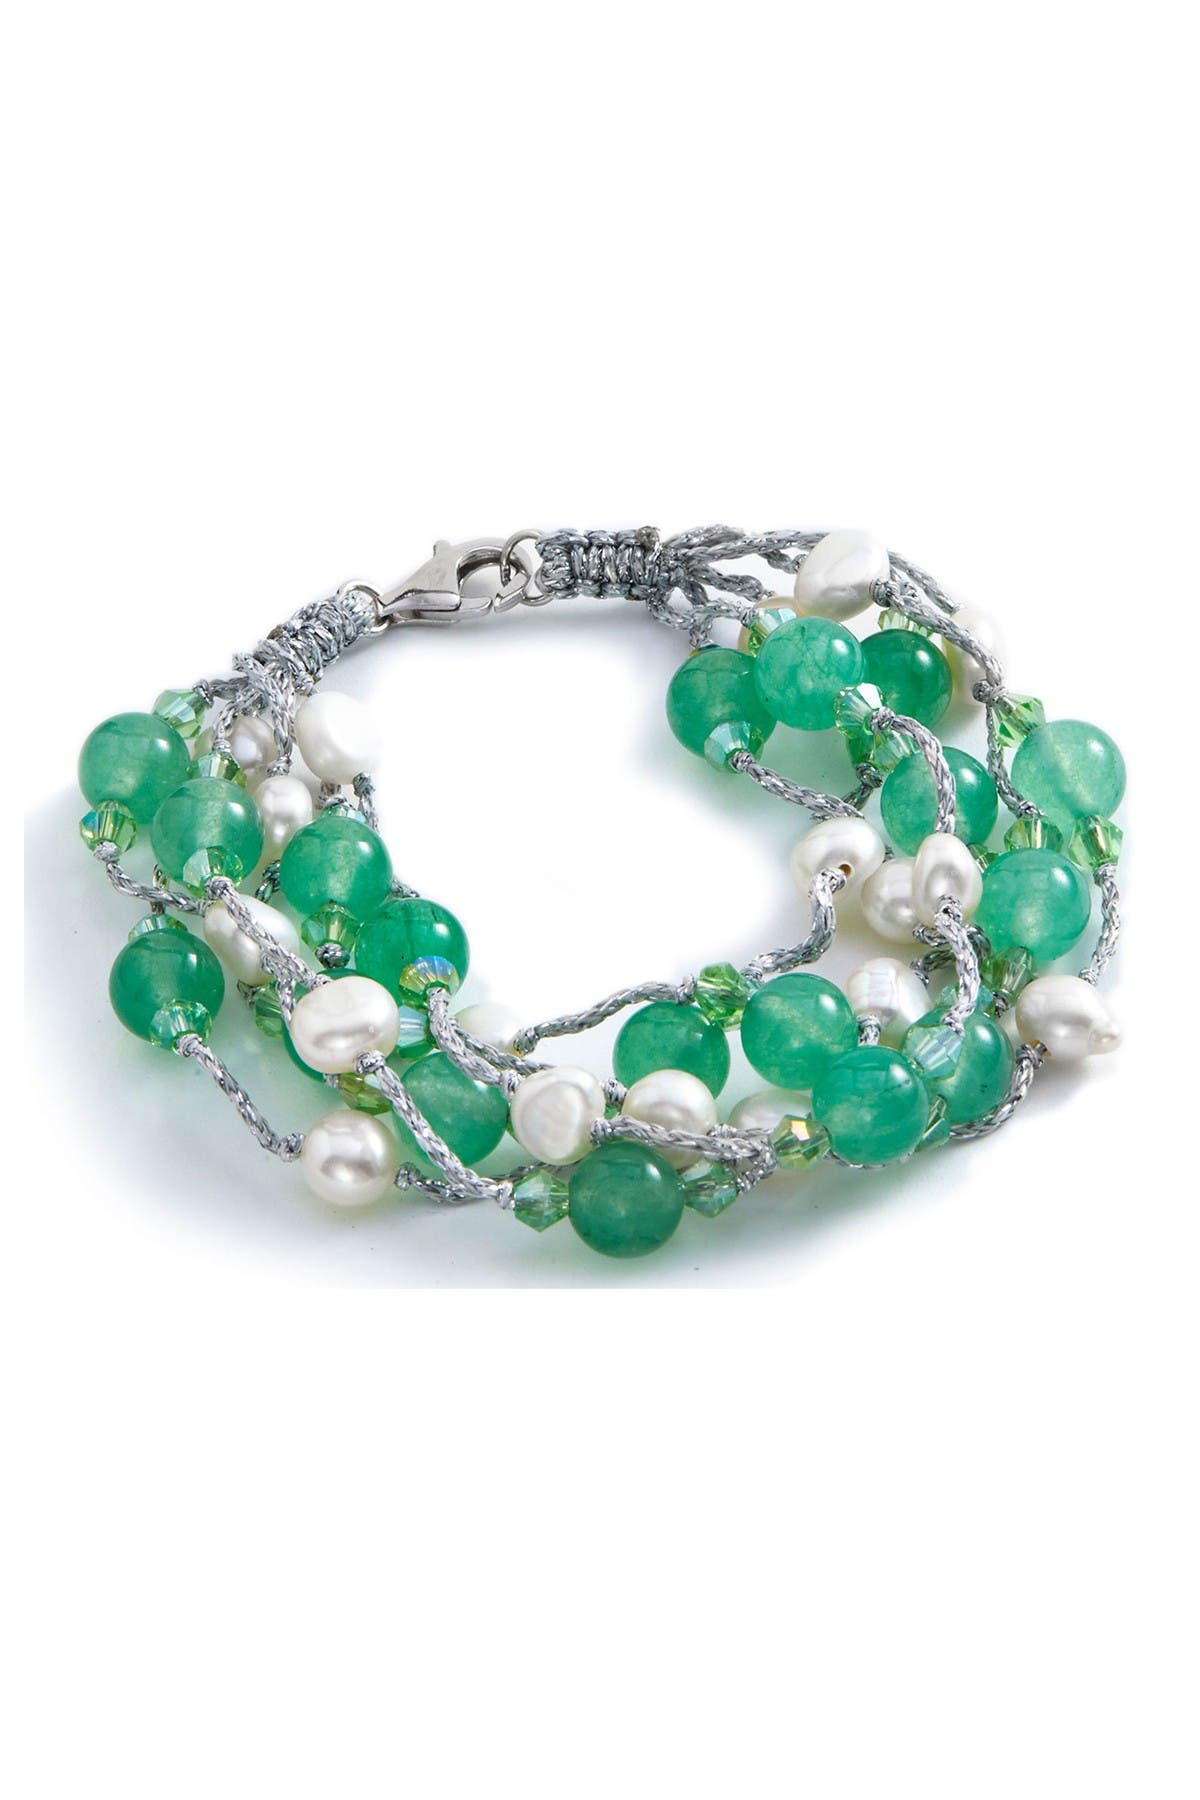 Image of Savvy Cie Sterling Silver Agate & Cultured Pearl Layered Bracelet